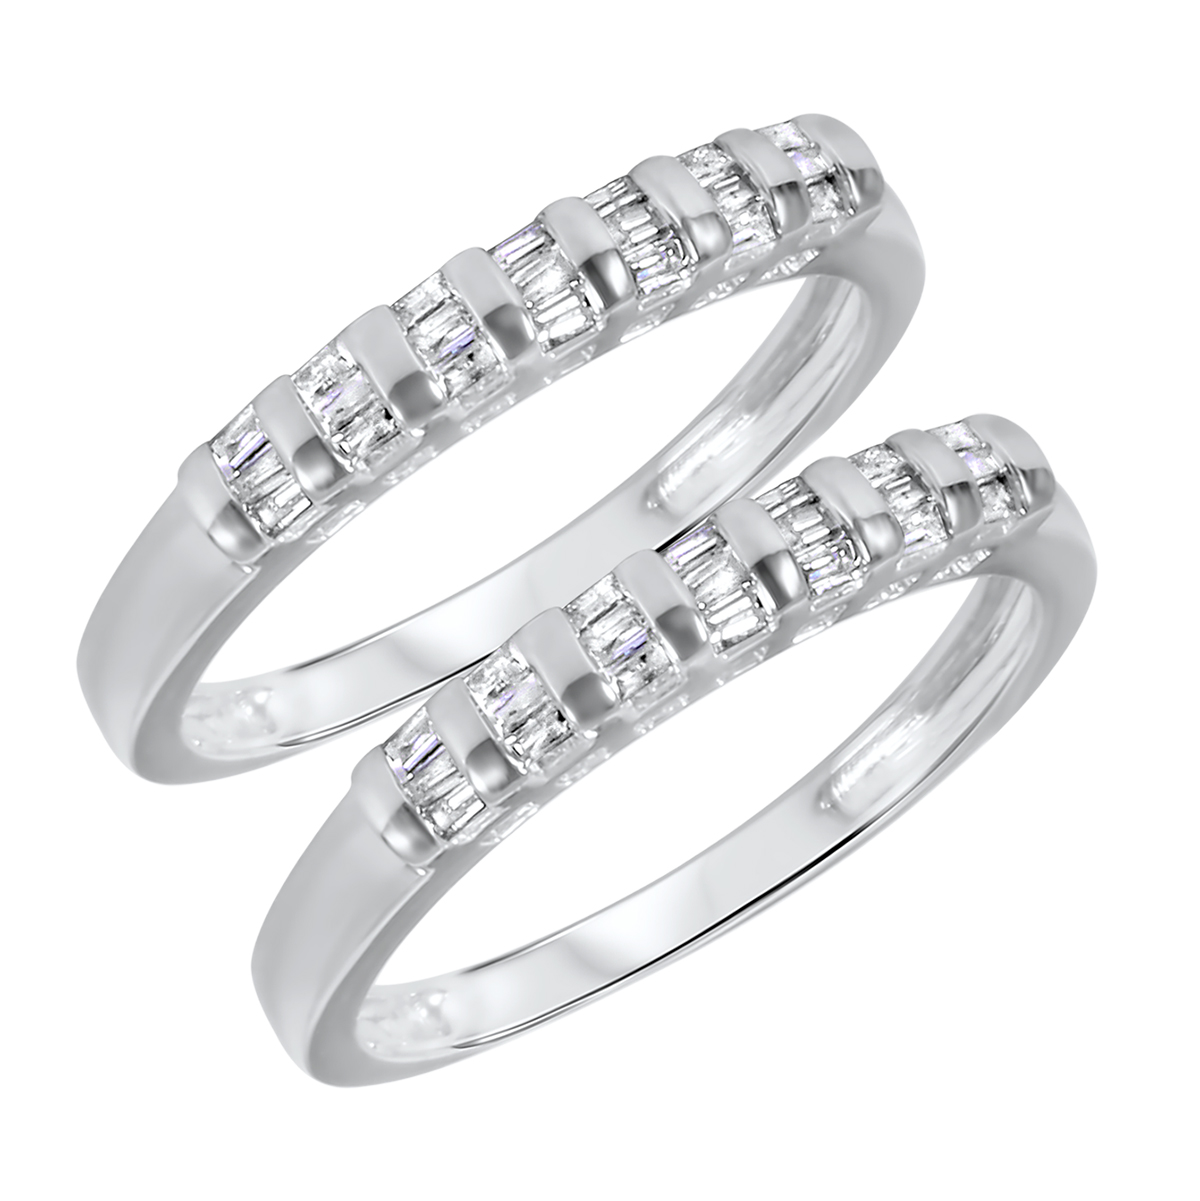 1/2 CT. T.W. Baguette Cut Ladies Same Sex Wedding Band Set 14K White Gold- Size